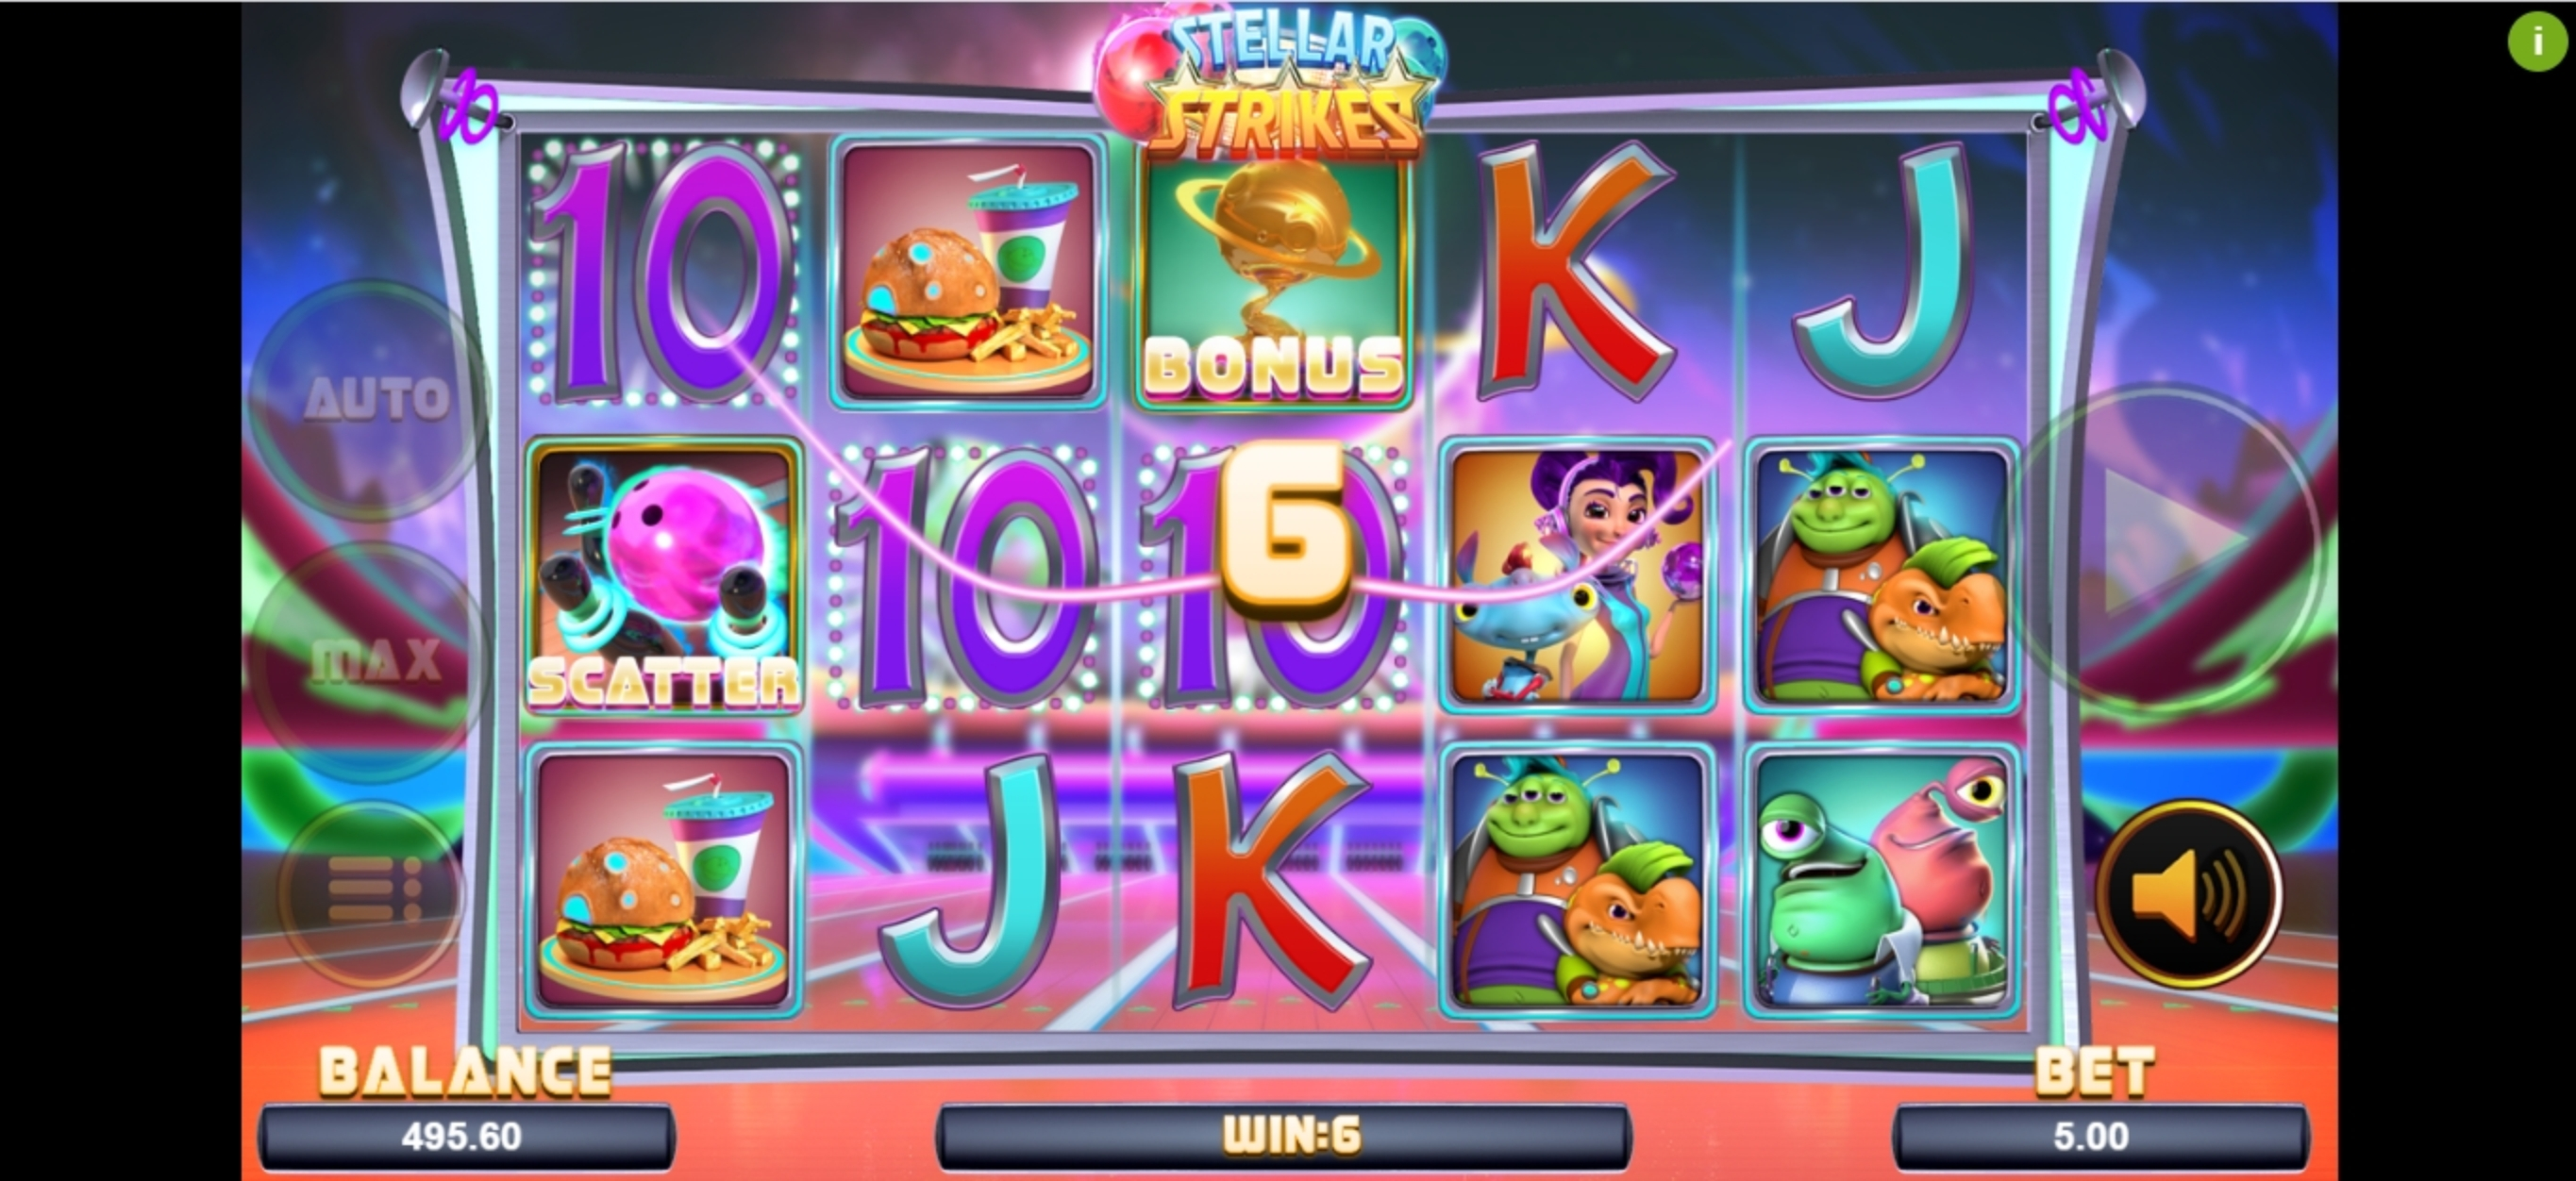 Win Money in Stellar Strikes Free Slot Game by Magma